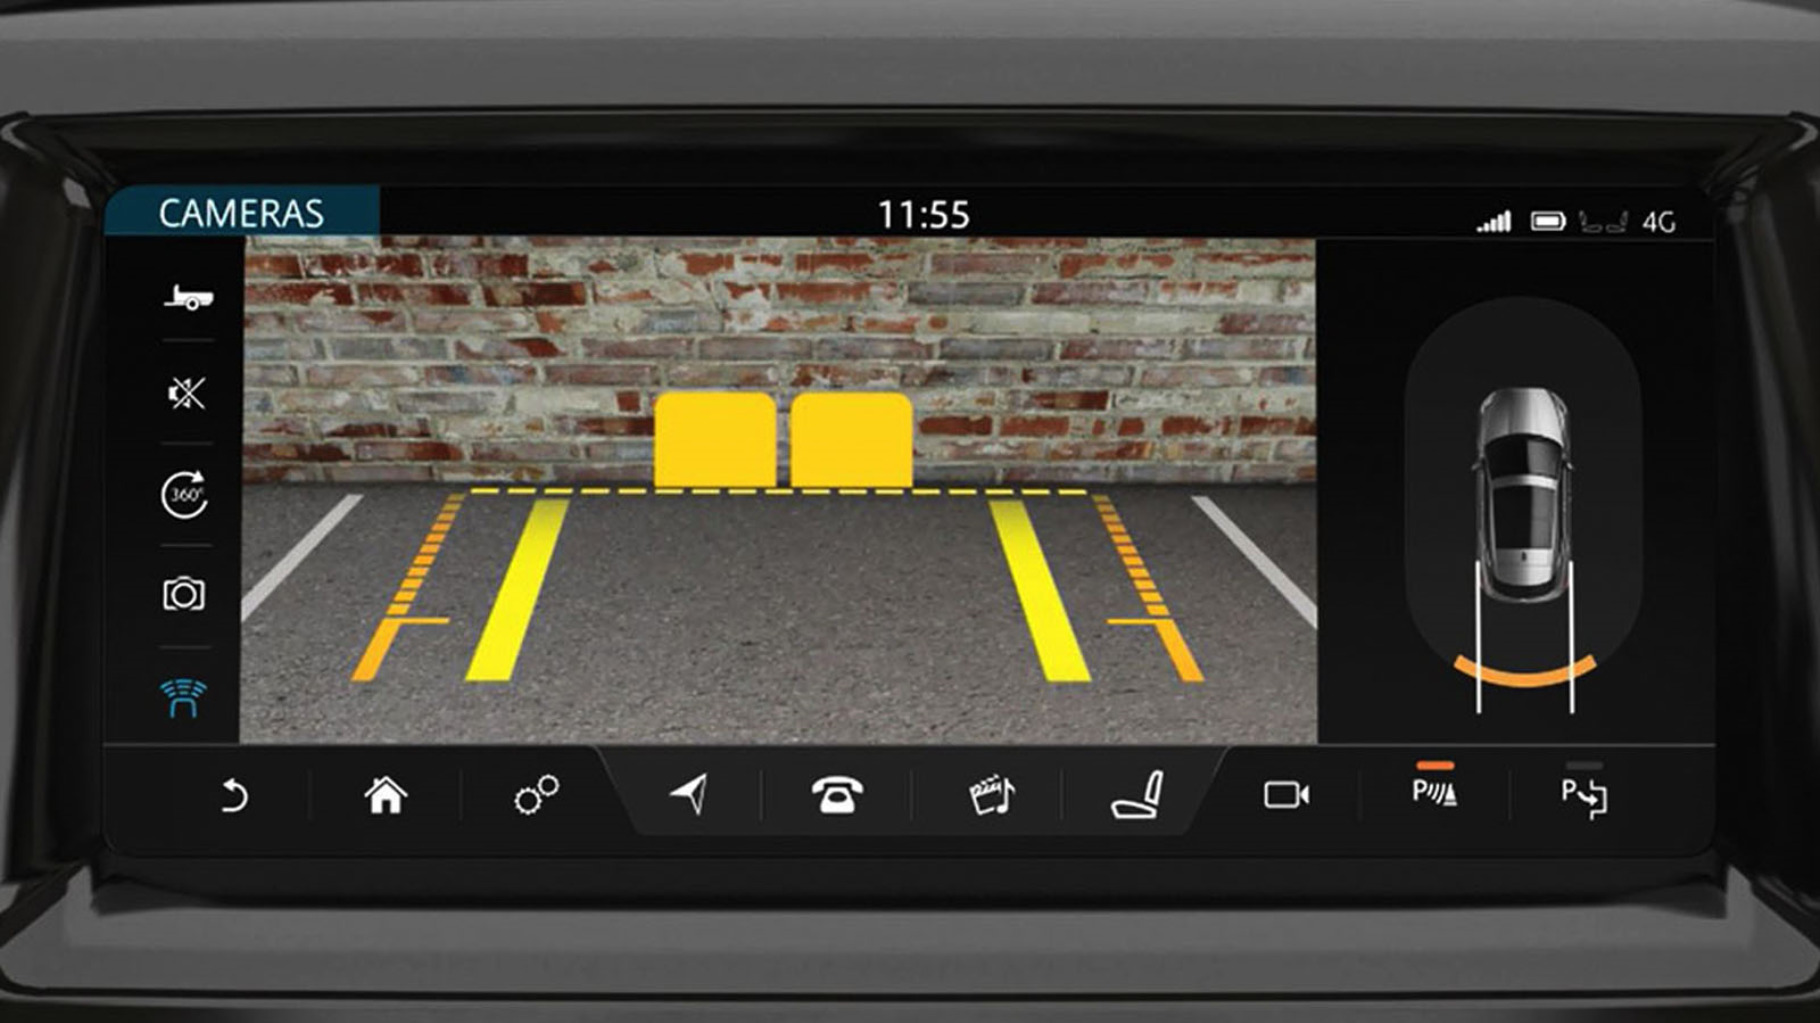 IMG_WRAPPER_Gallery-Asset_02-Touch-Pro-Parking-Aid_Device-Desktop_680x450.jpg